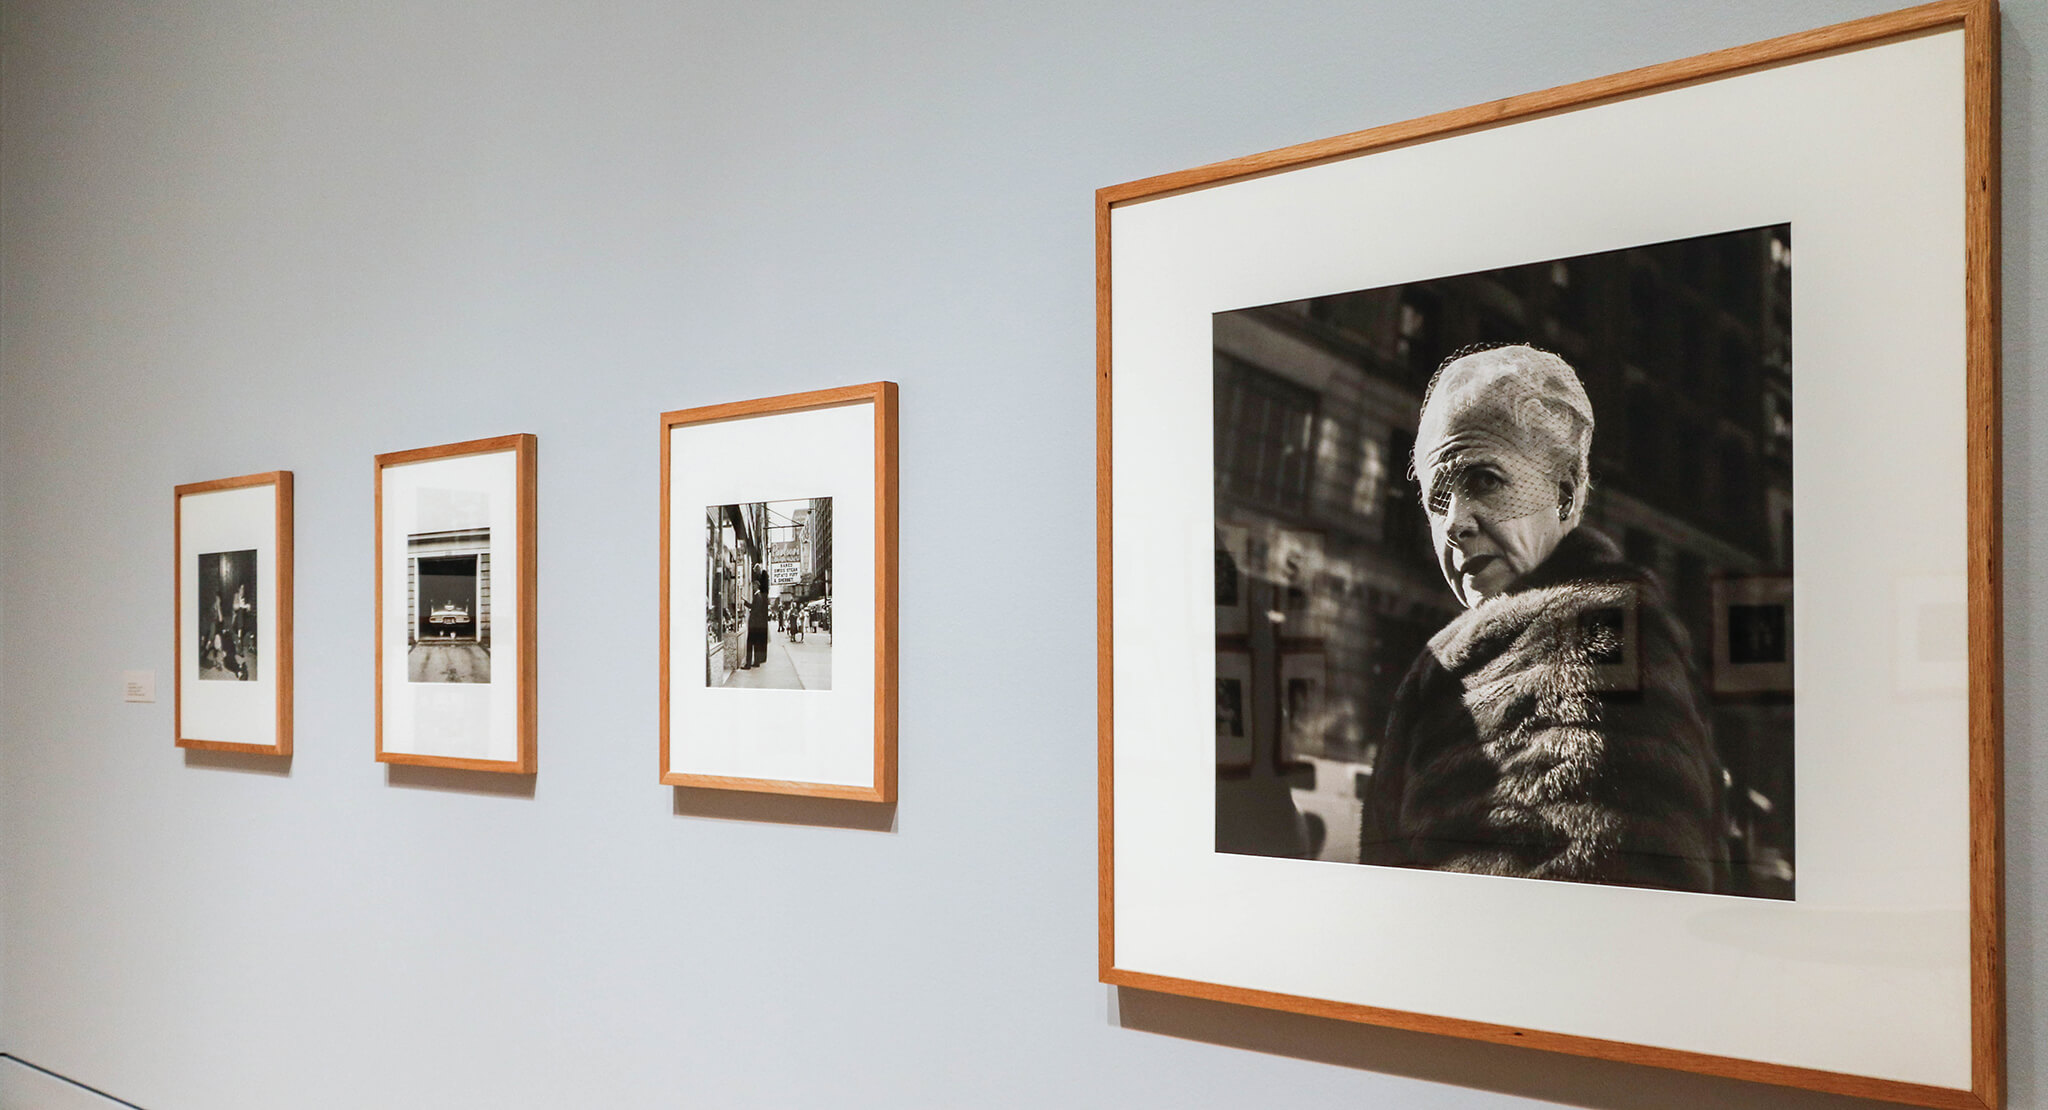 Vivian Maier: Love and Intimacy From a Photographer's Perspective